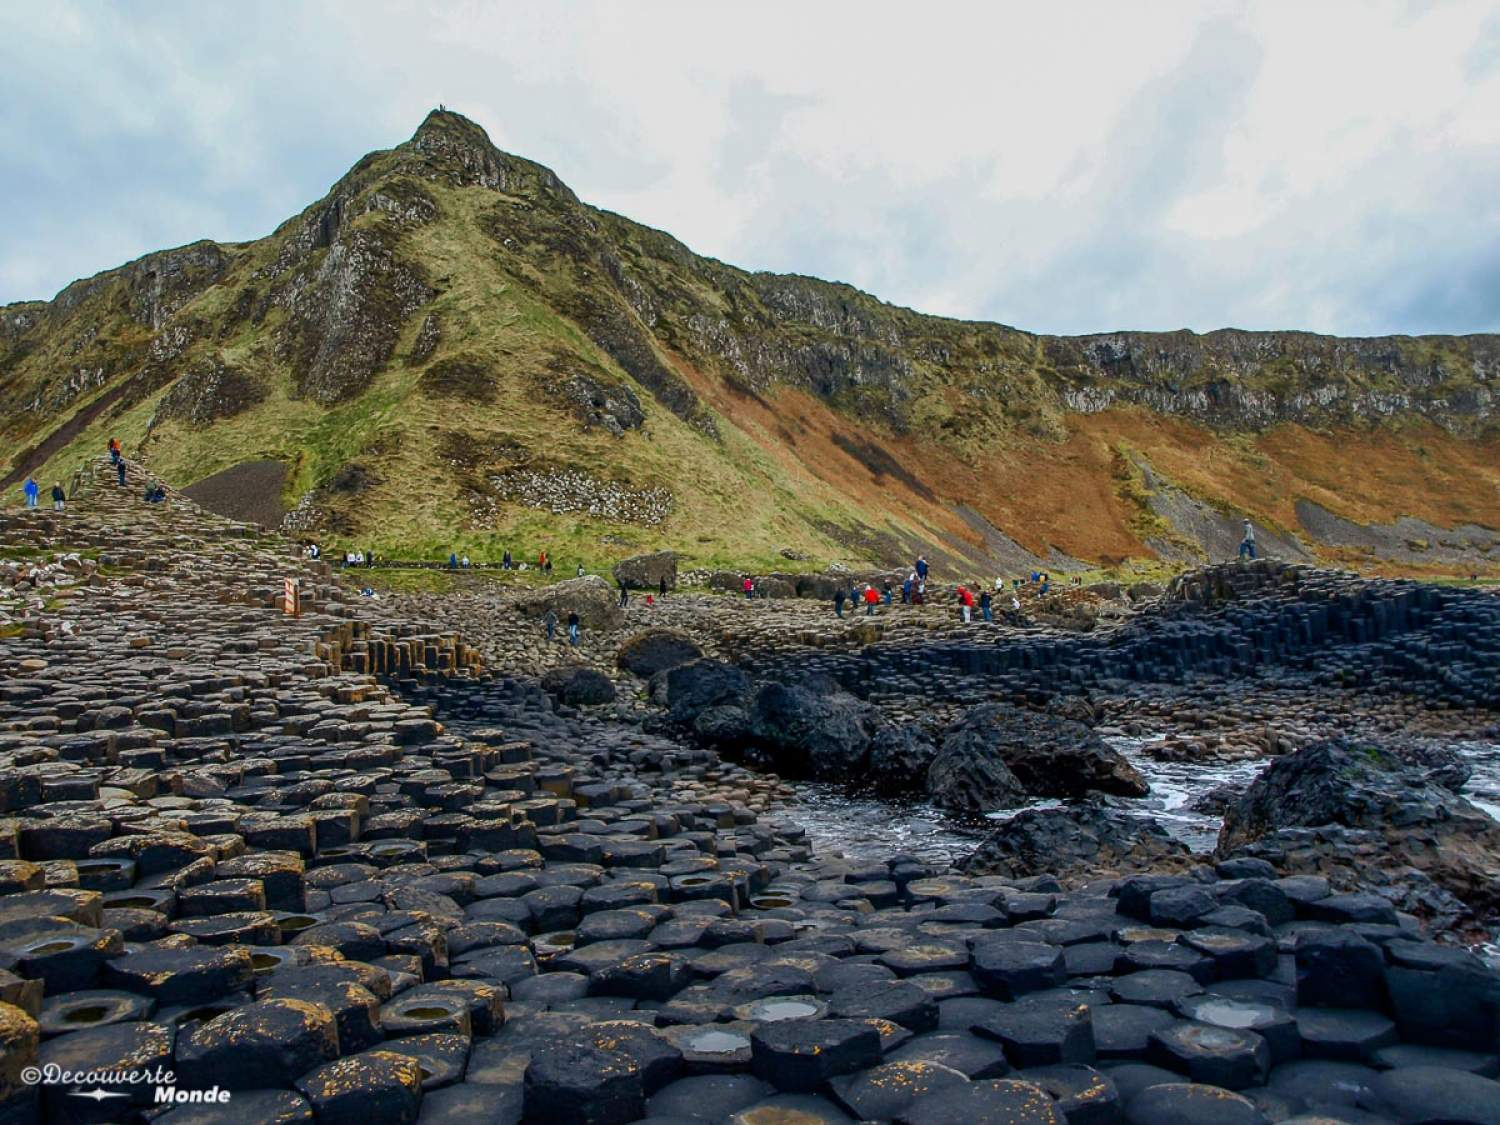 The Giant Causeway, north of Ireland